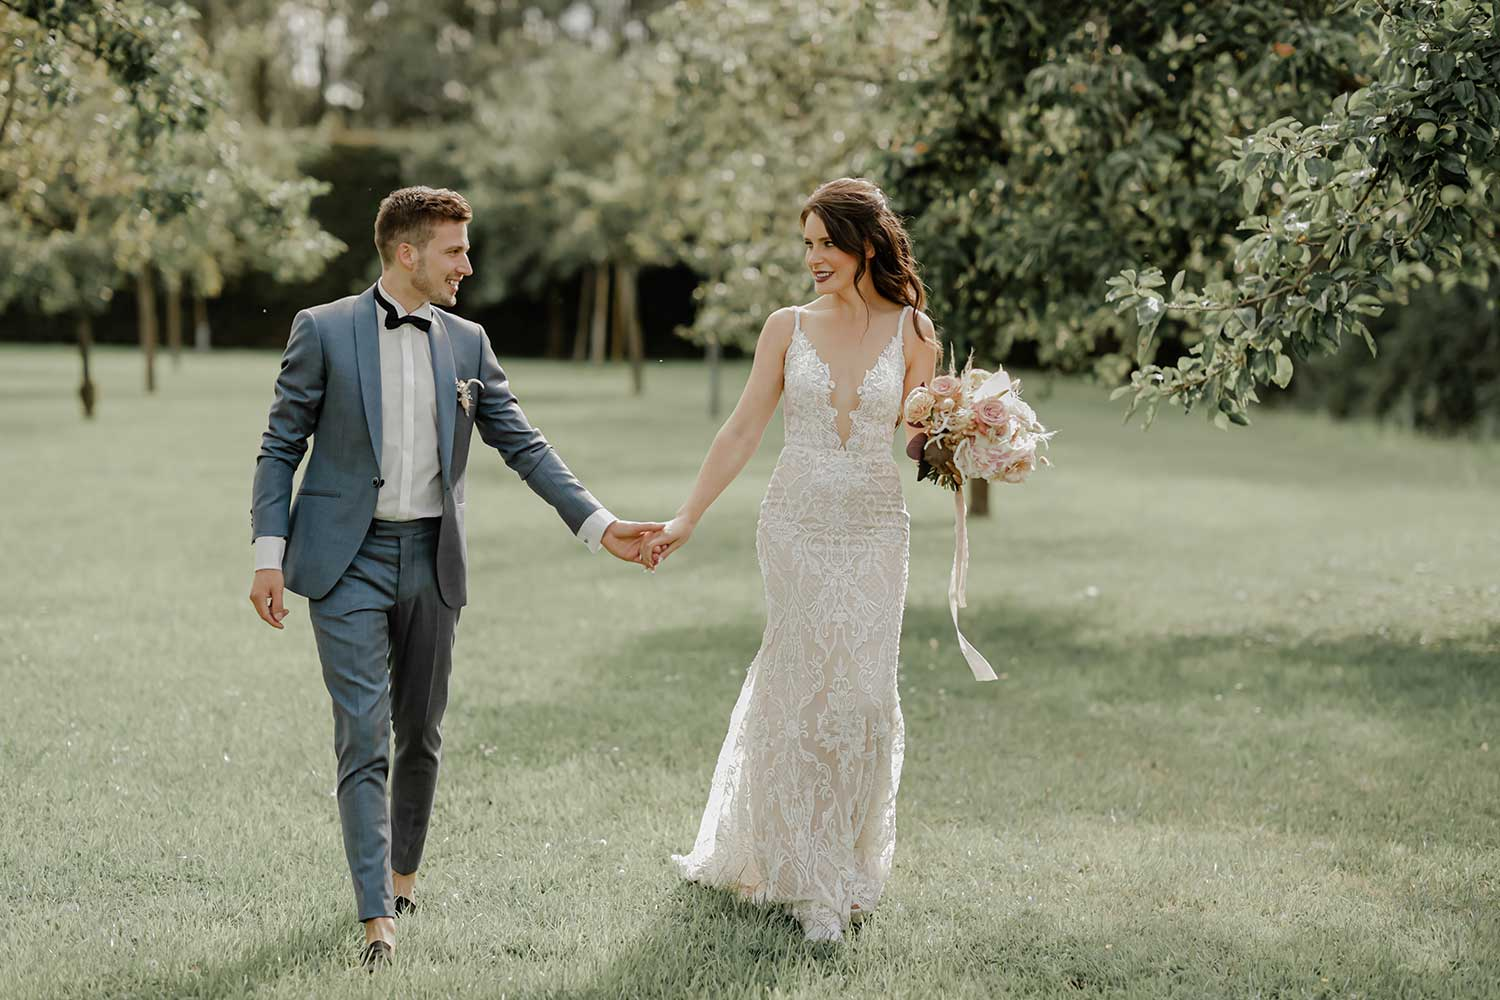 The couple walking together hand in hand